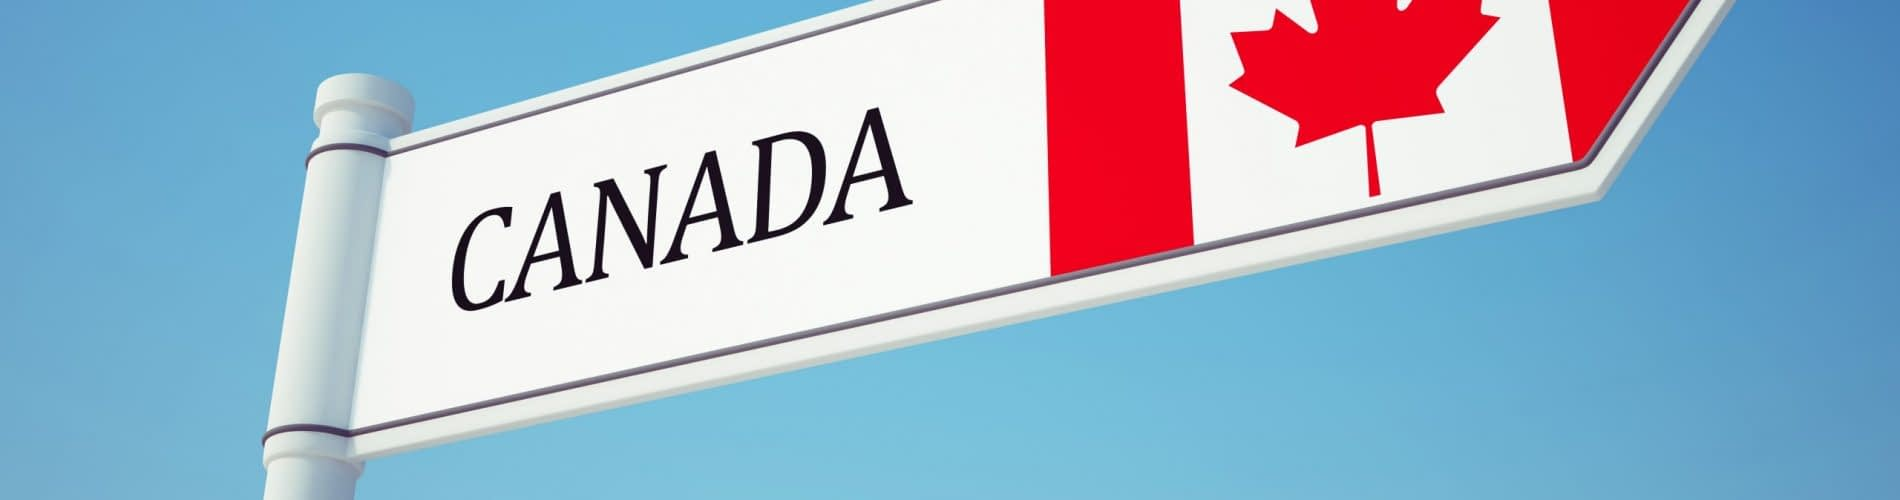 Canada Flag Sign isolated on sky